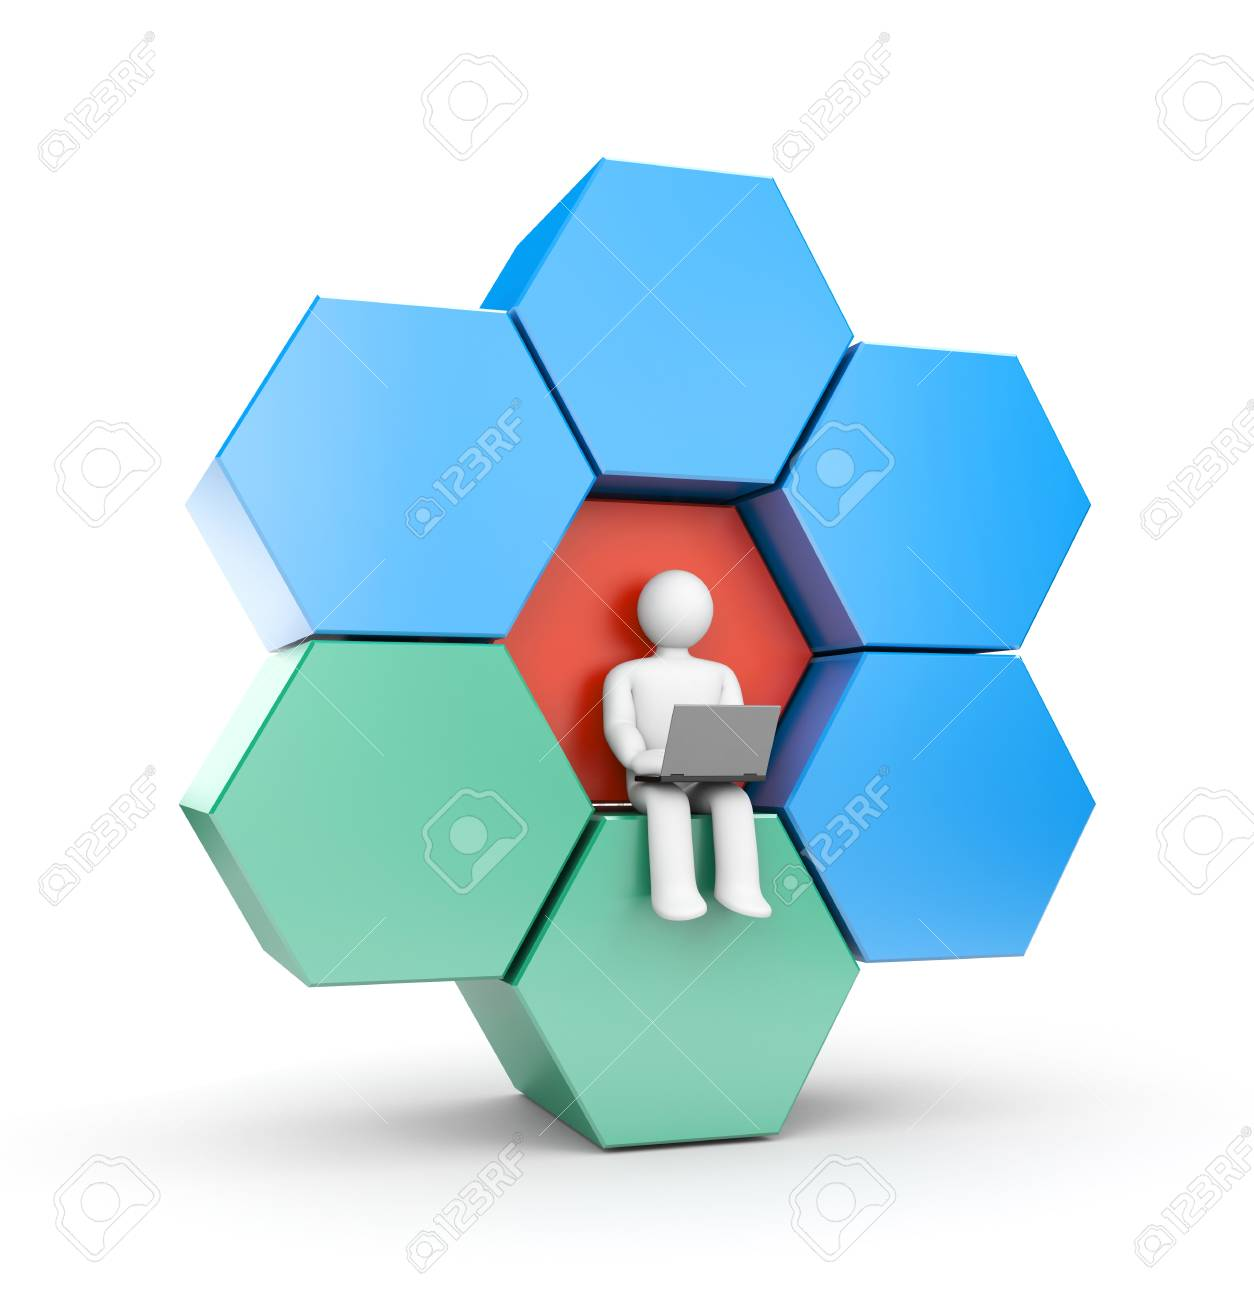 hight resolution of person working at the computer abstract figure which can be used as a design element